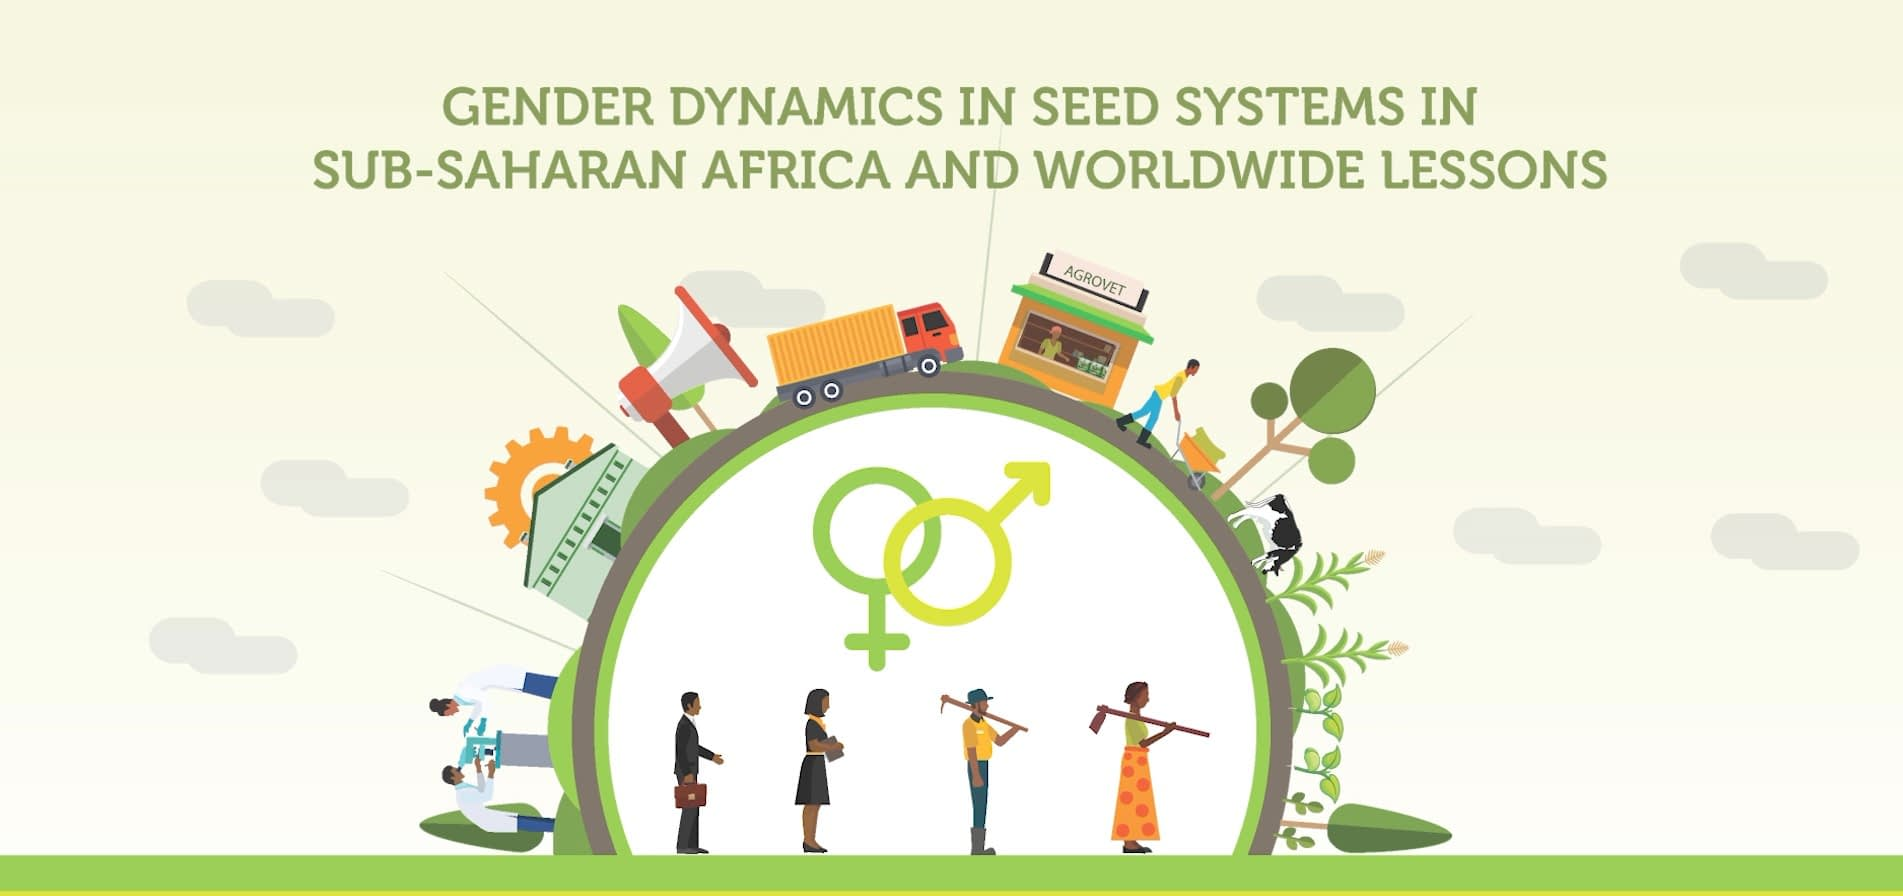 Gender Dynamics in Seed Systems in Sub-Saharan Africa and Worldwide Lessons workshop